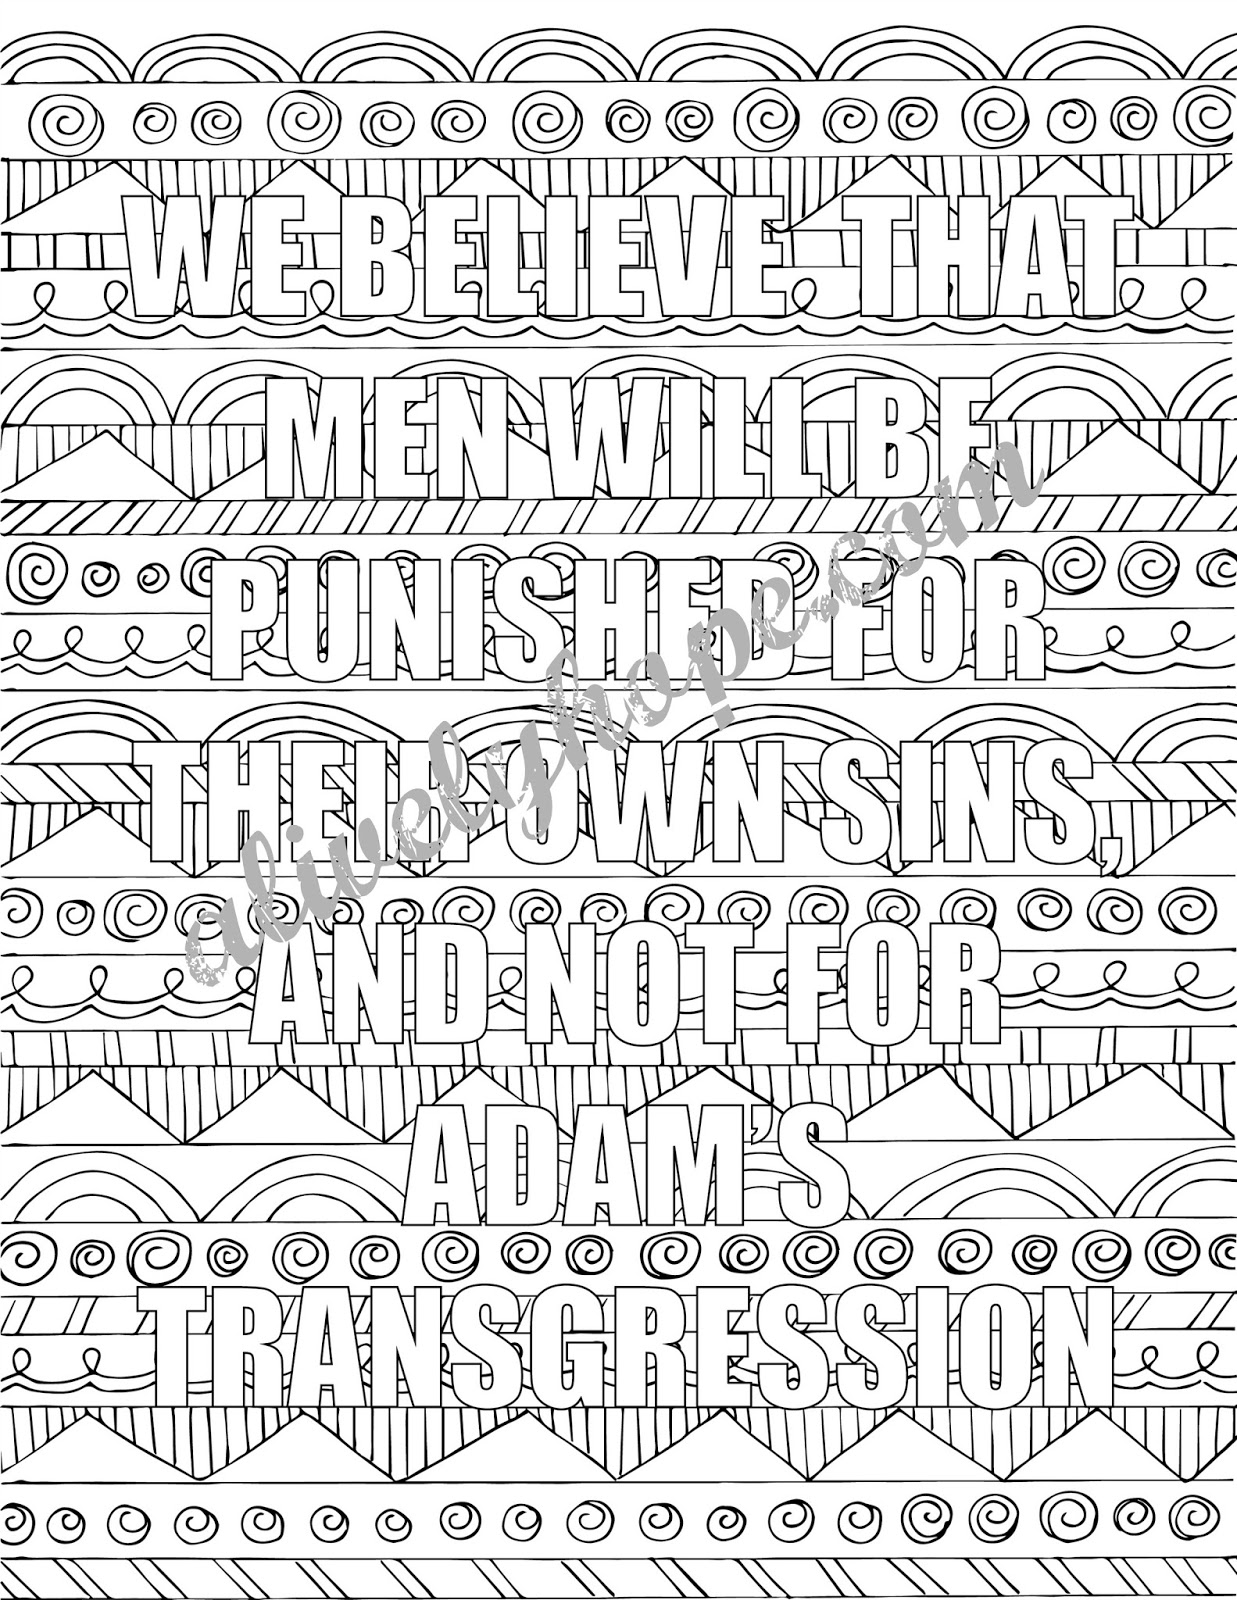 article of faith coloring pages - photo#20